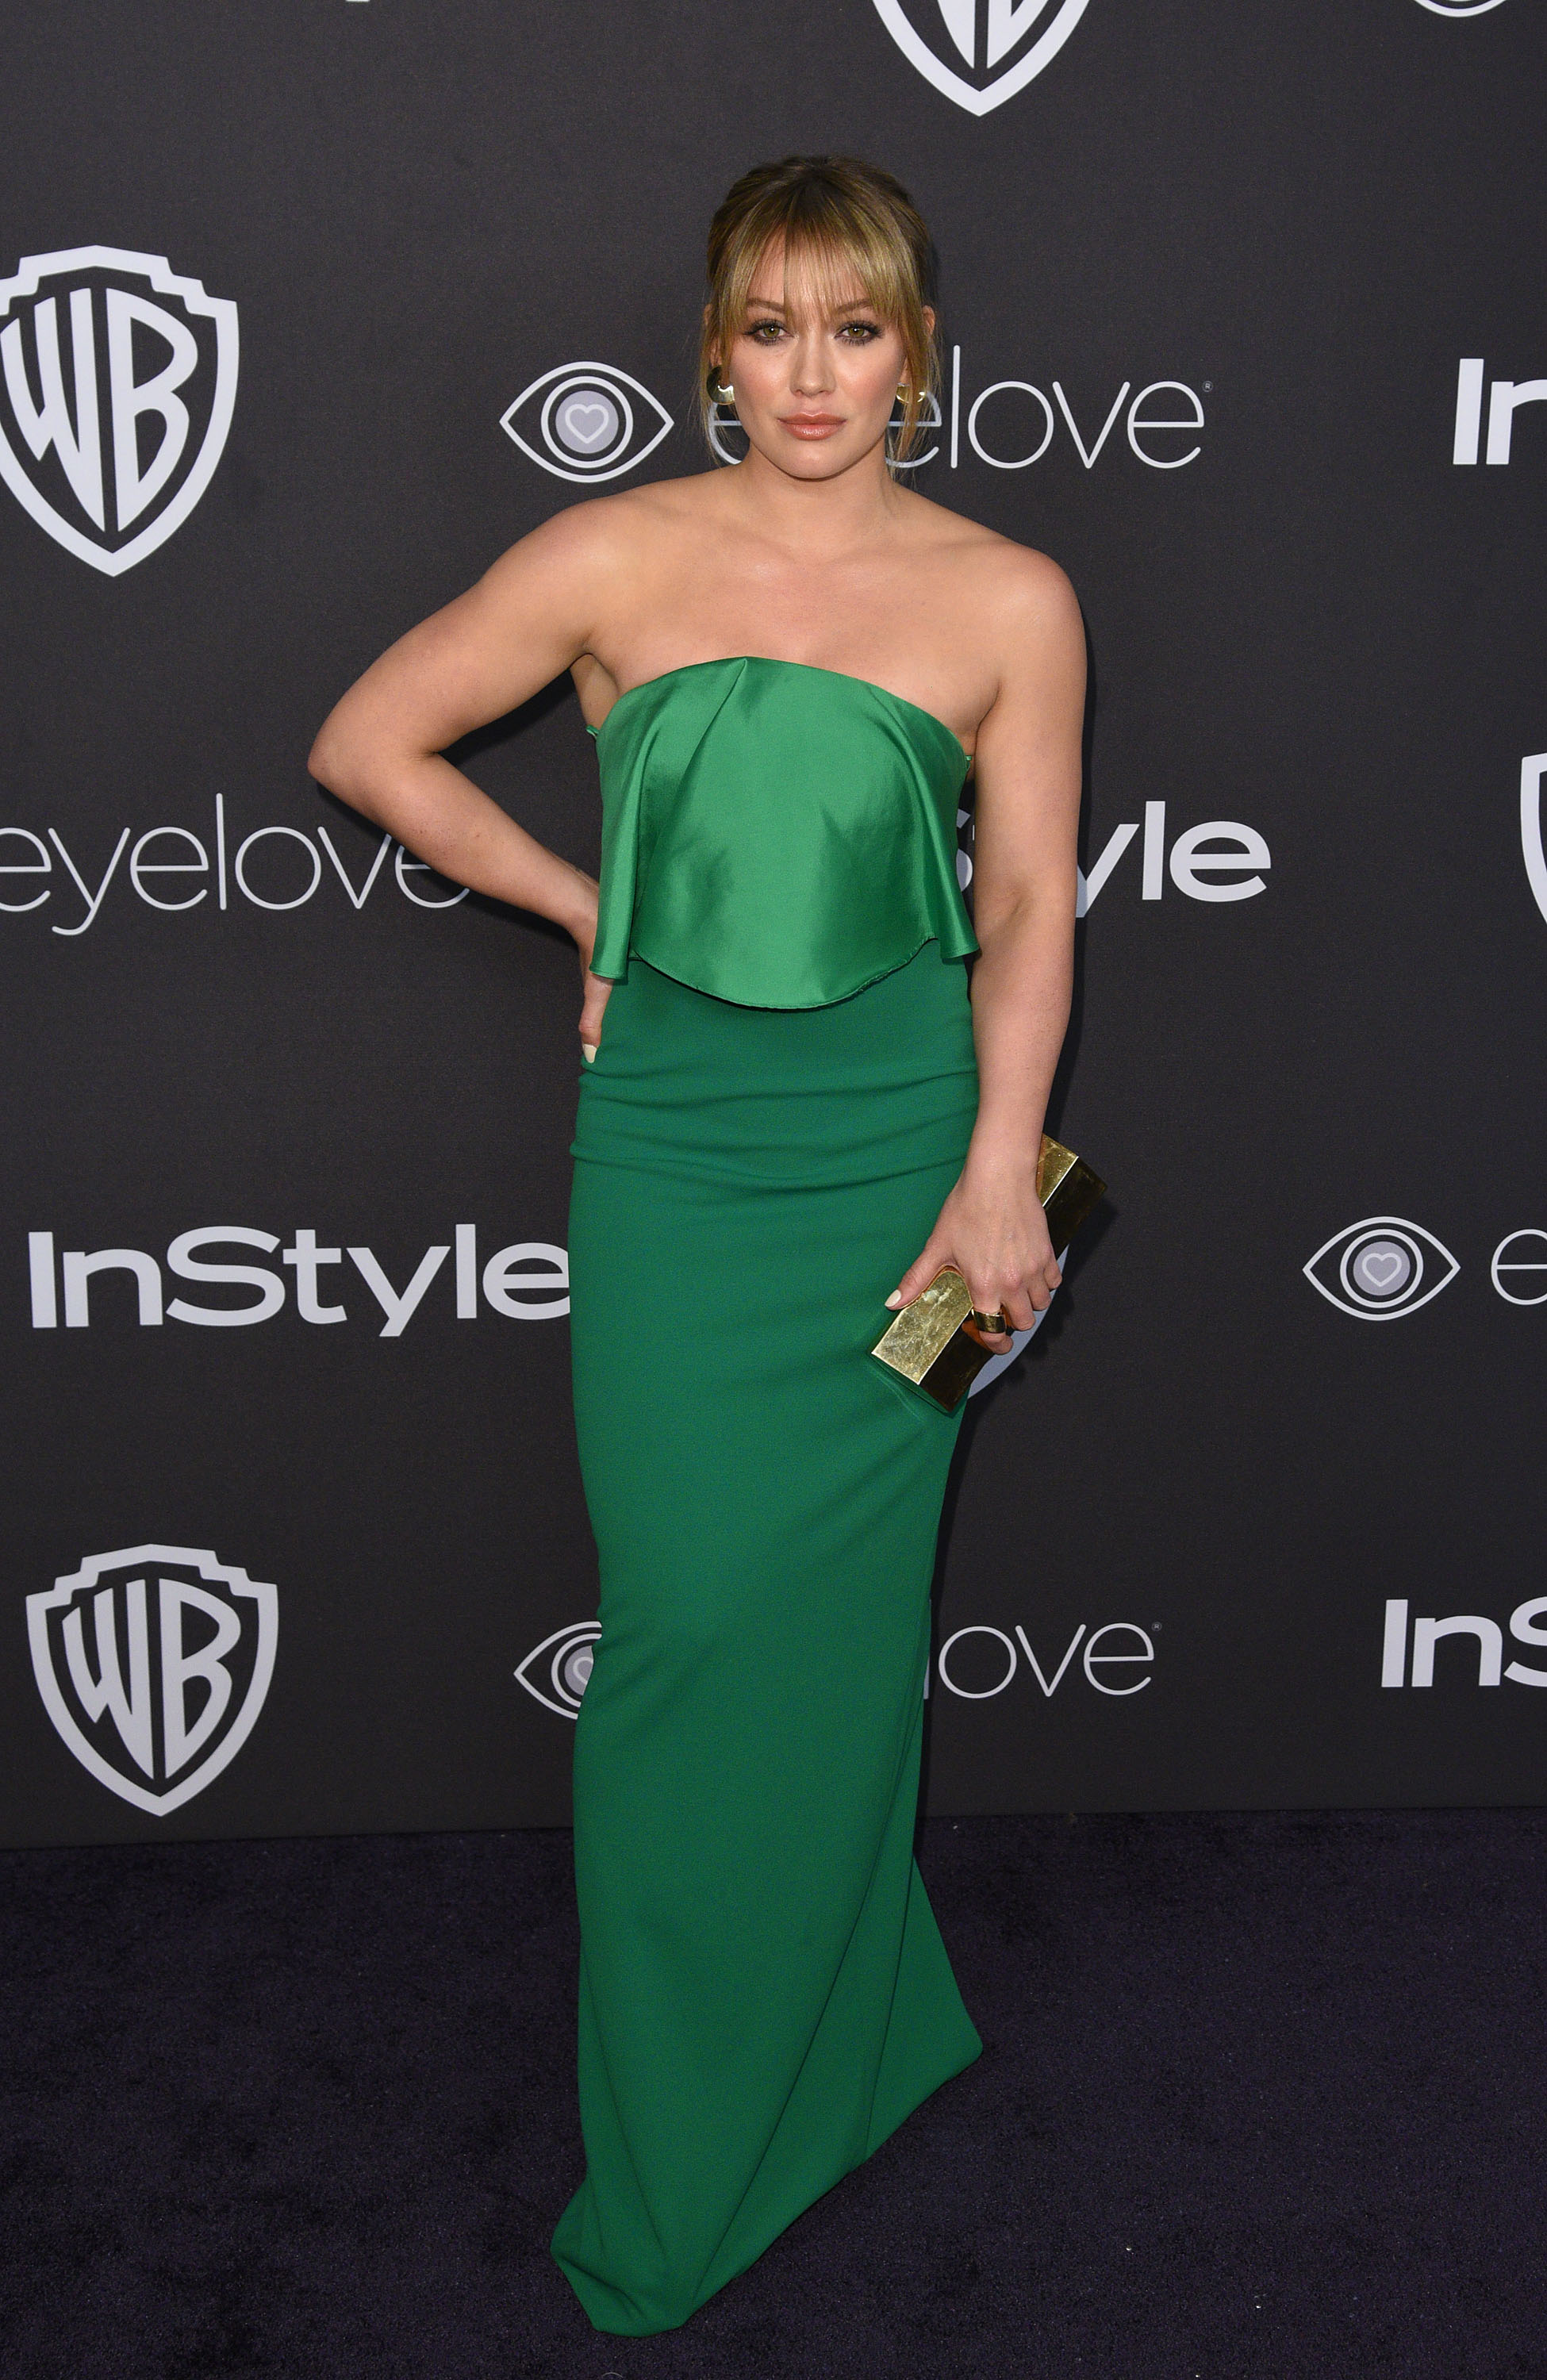 gettyimages emerald city looked fashion hilary of globes golden duff queen at after like the party